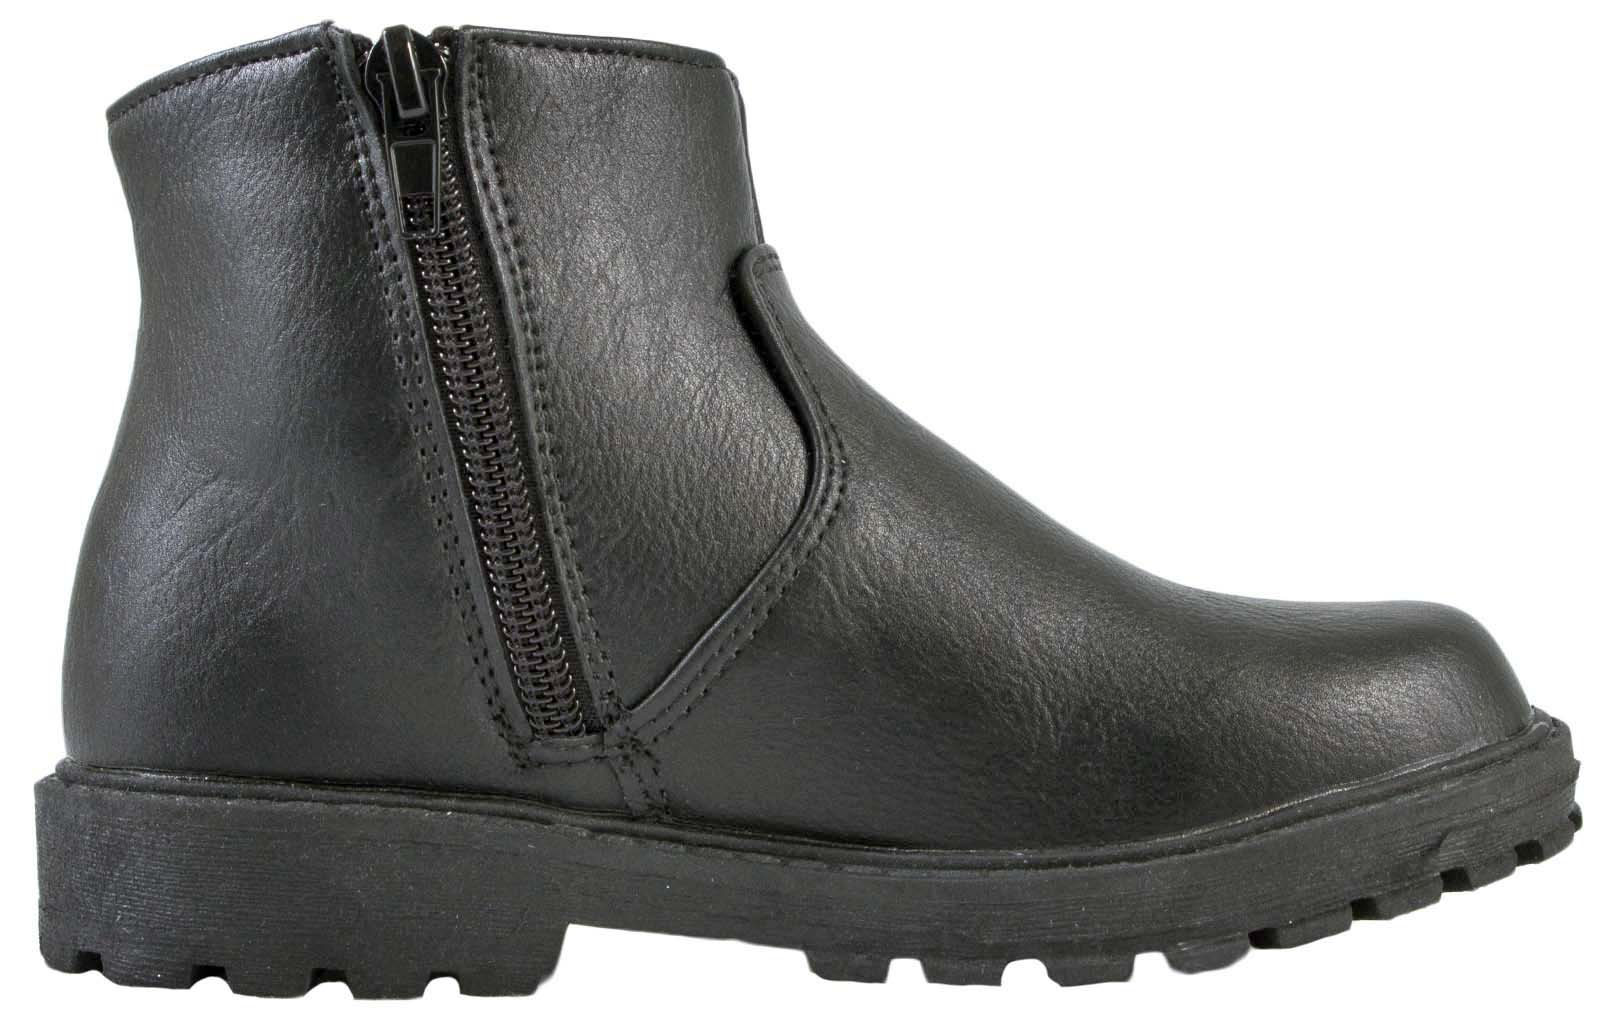 Shop for boys' boots at trueiupnbp.gq Next day delivery and free returns available. Browse the latest variety in desert, chelsea and winter boots for boys now!